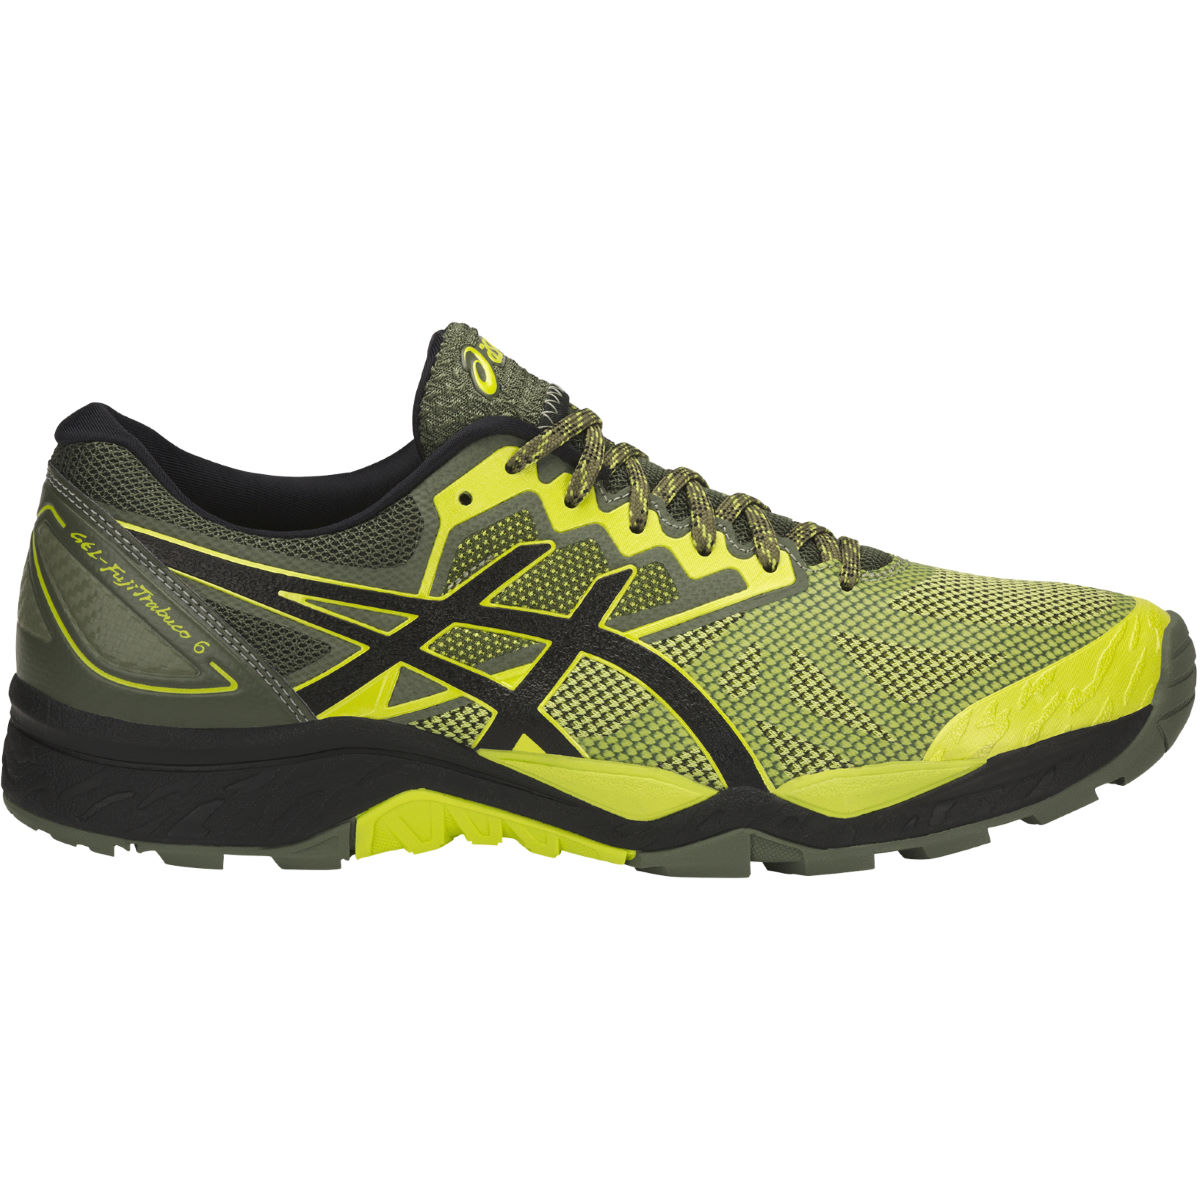 Chaussures Asics Gel-Fujitrabuco 6 - UK 7 SULPHUR SPRING/BLACK